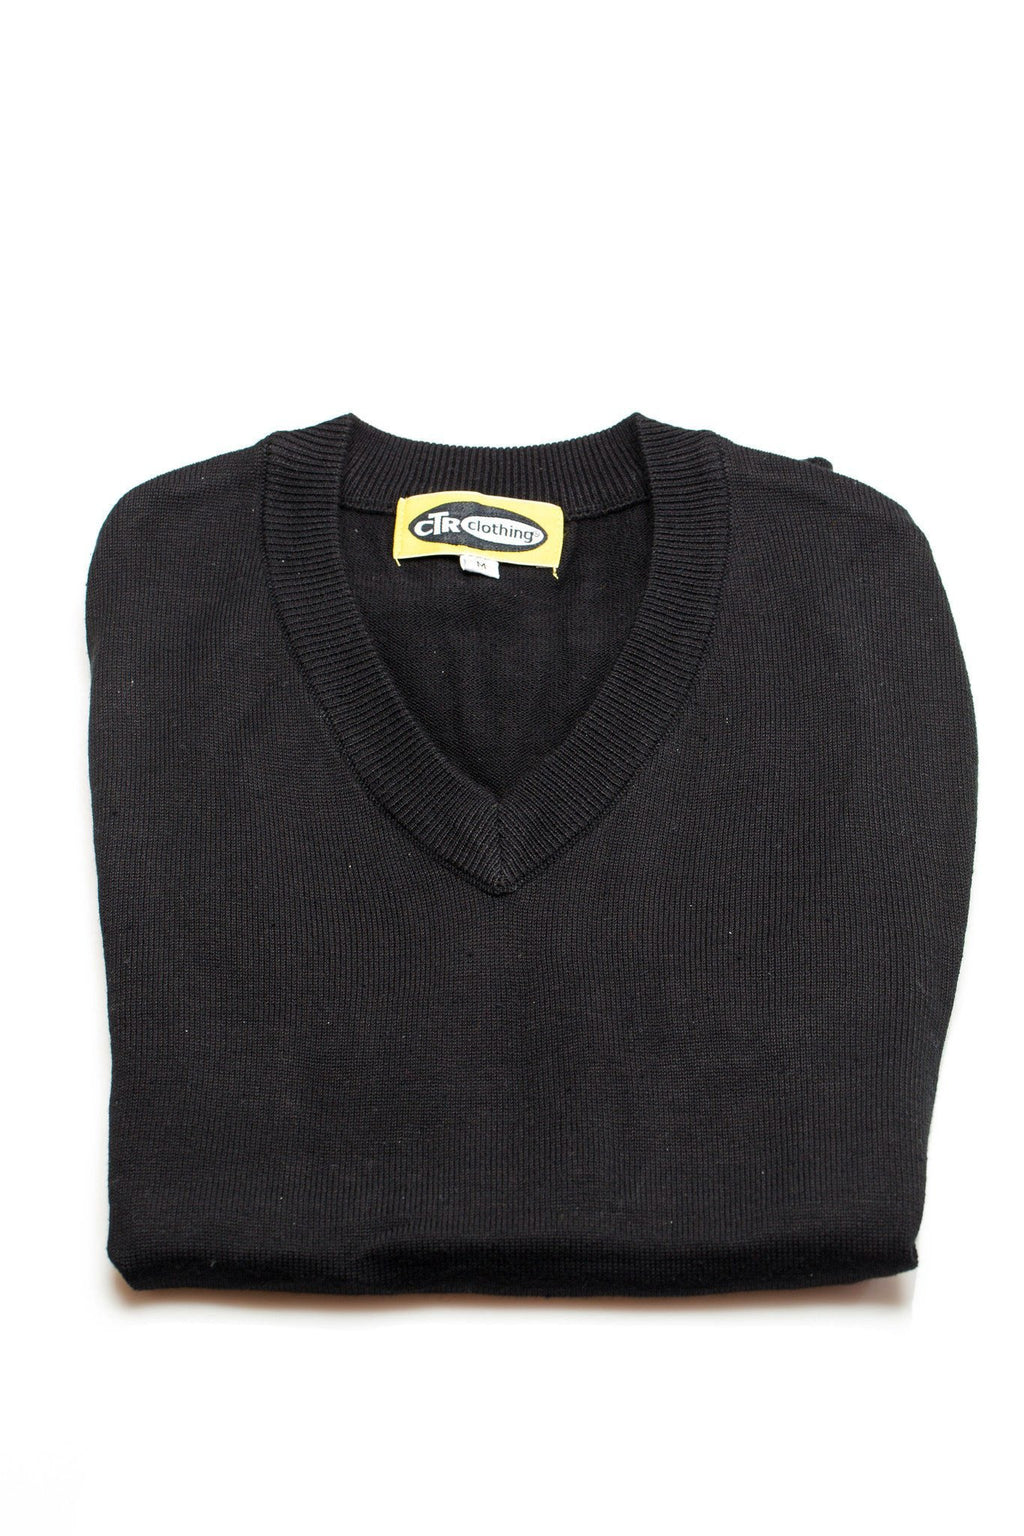 V-Neck Missionary Sweater Vest Black by CTR Clothing - The Kater Shop - 2